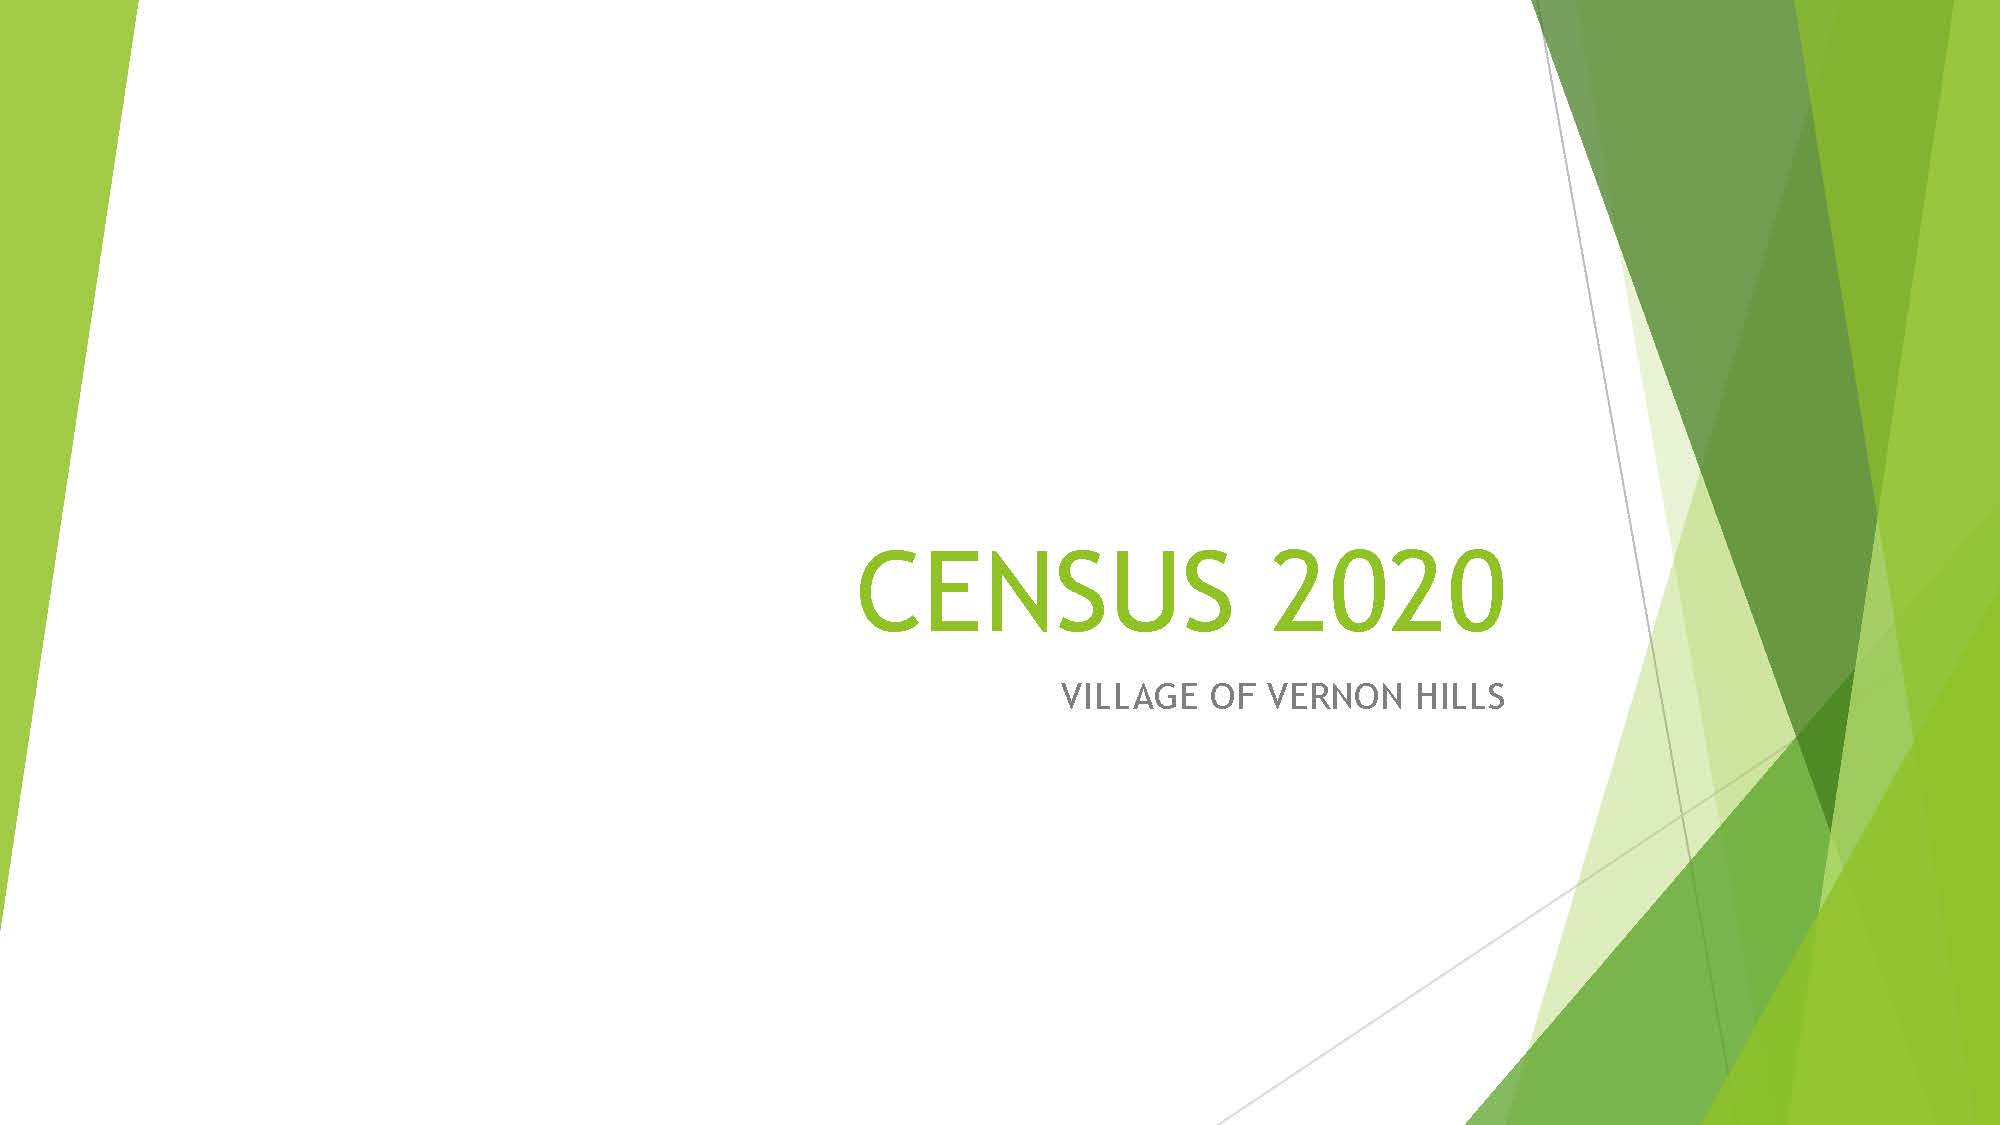 CENSUS 2020 VVH Page 01